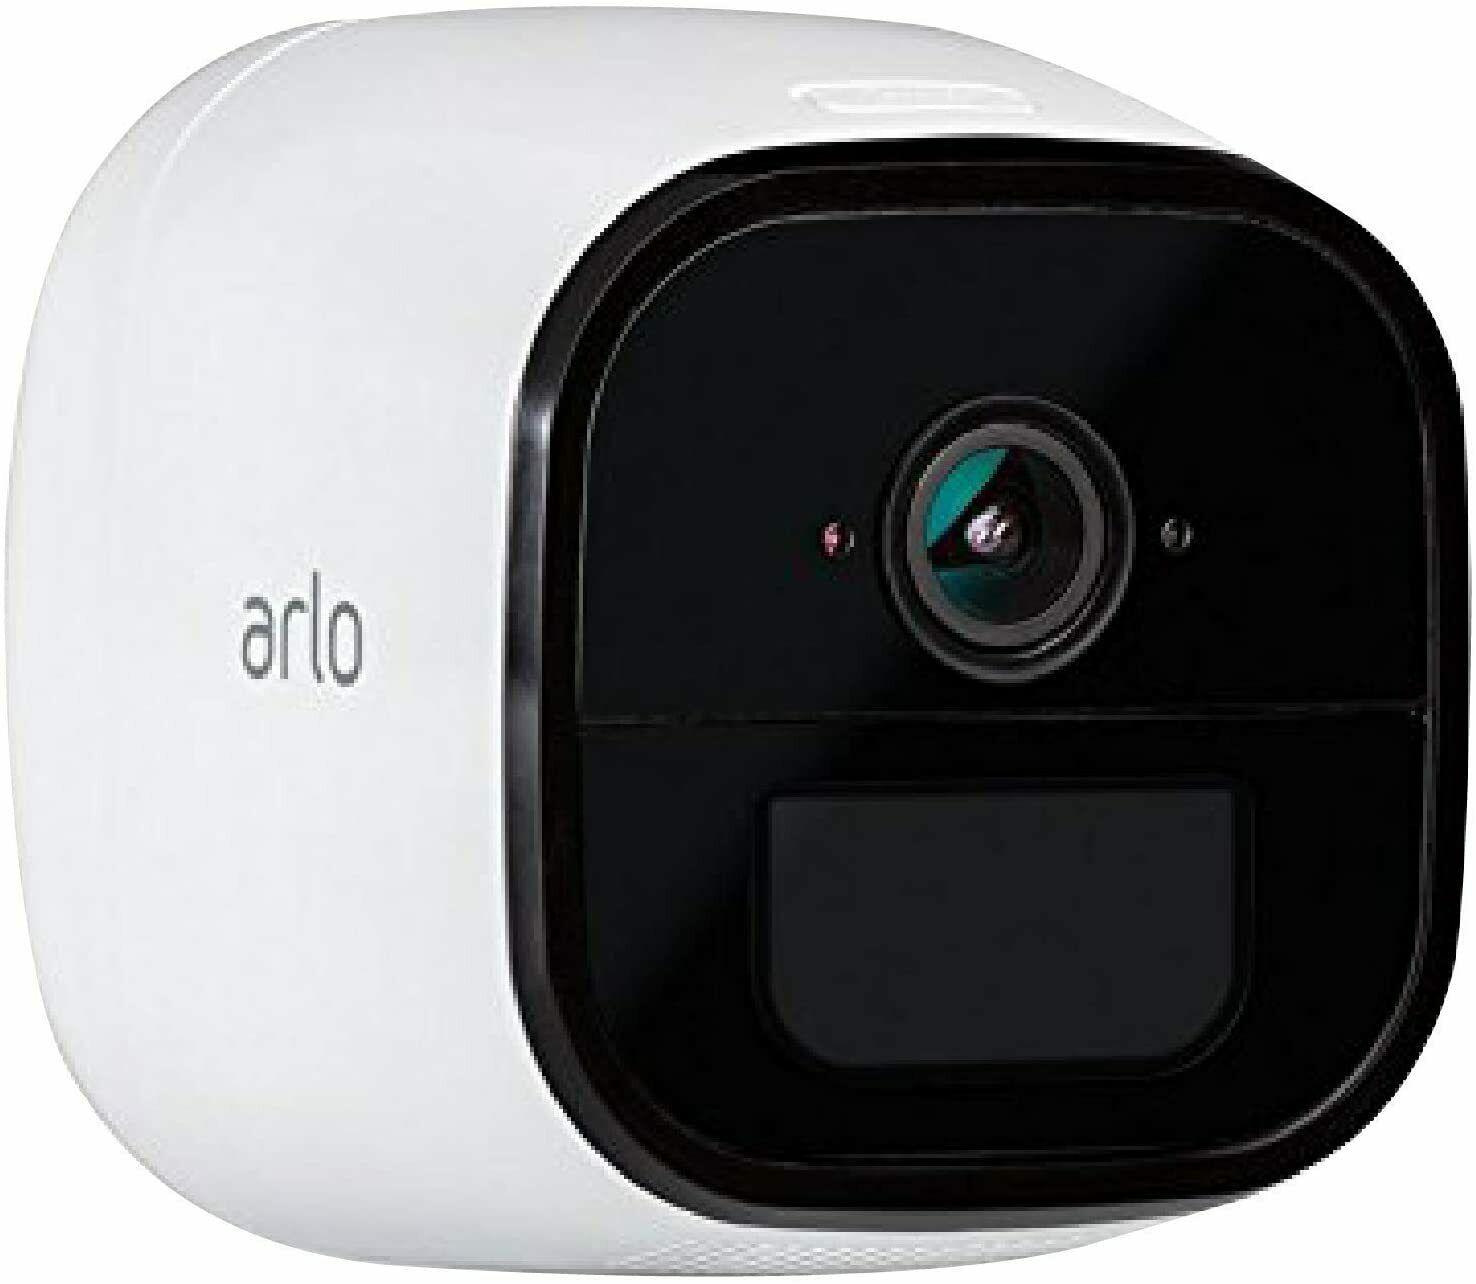 Arlo Go Wireless VERIZON LTE Mobile HD Security Camera Night Vision Weatherproof. Buy it now for 149.99